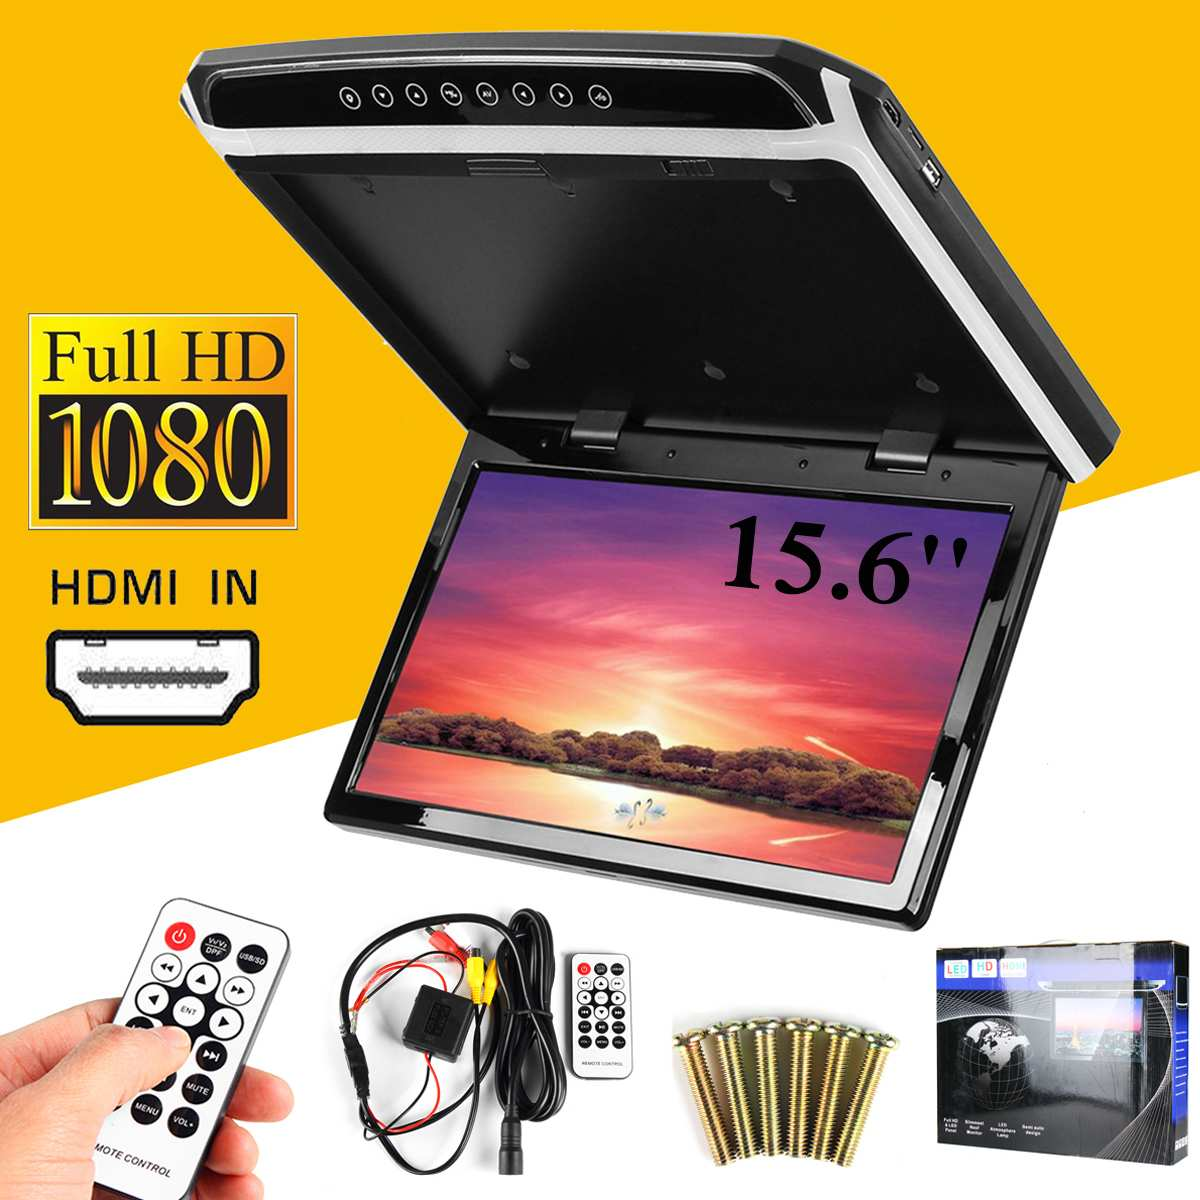 New 15.6 Inch HDMI 1080p Car Roof Mount Car Ceiling Flip Down TV Digital Screen Monitor 12V + Remote Control